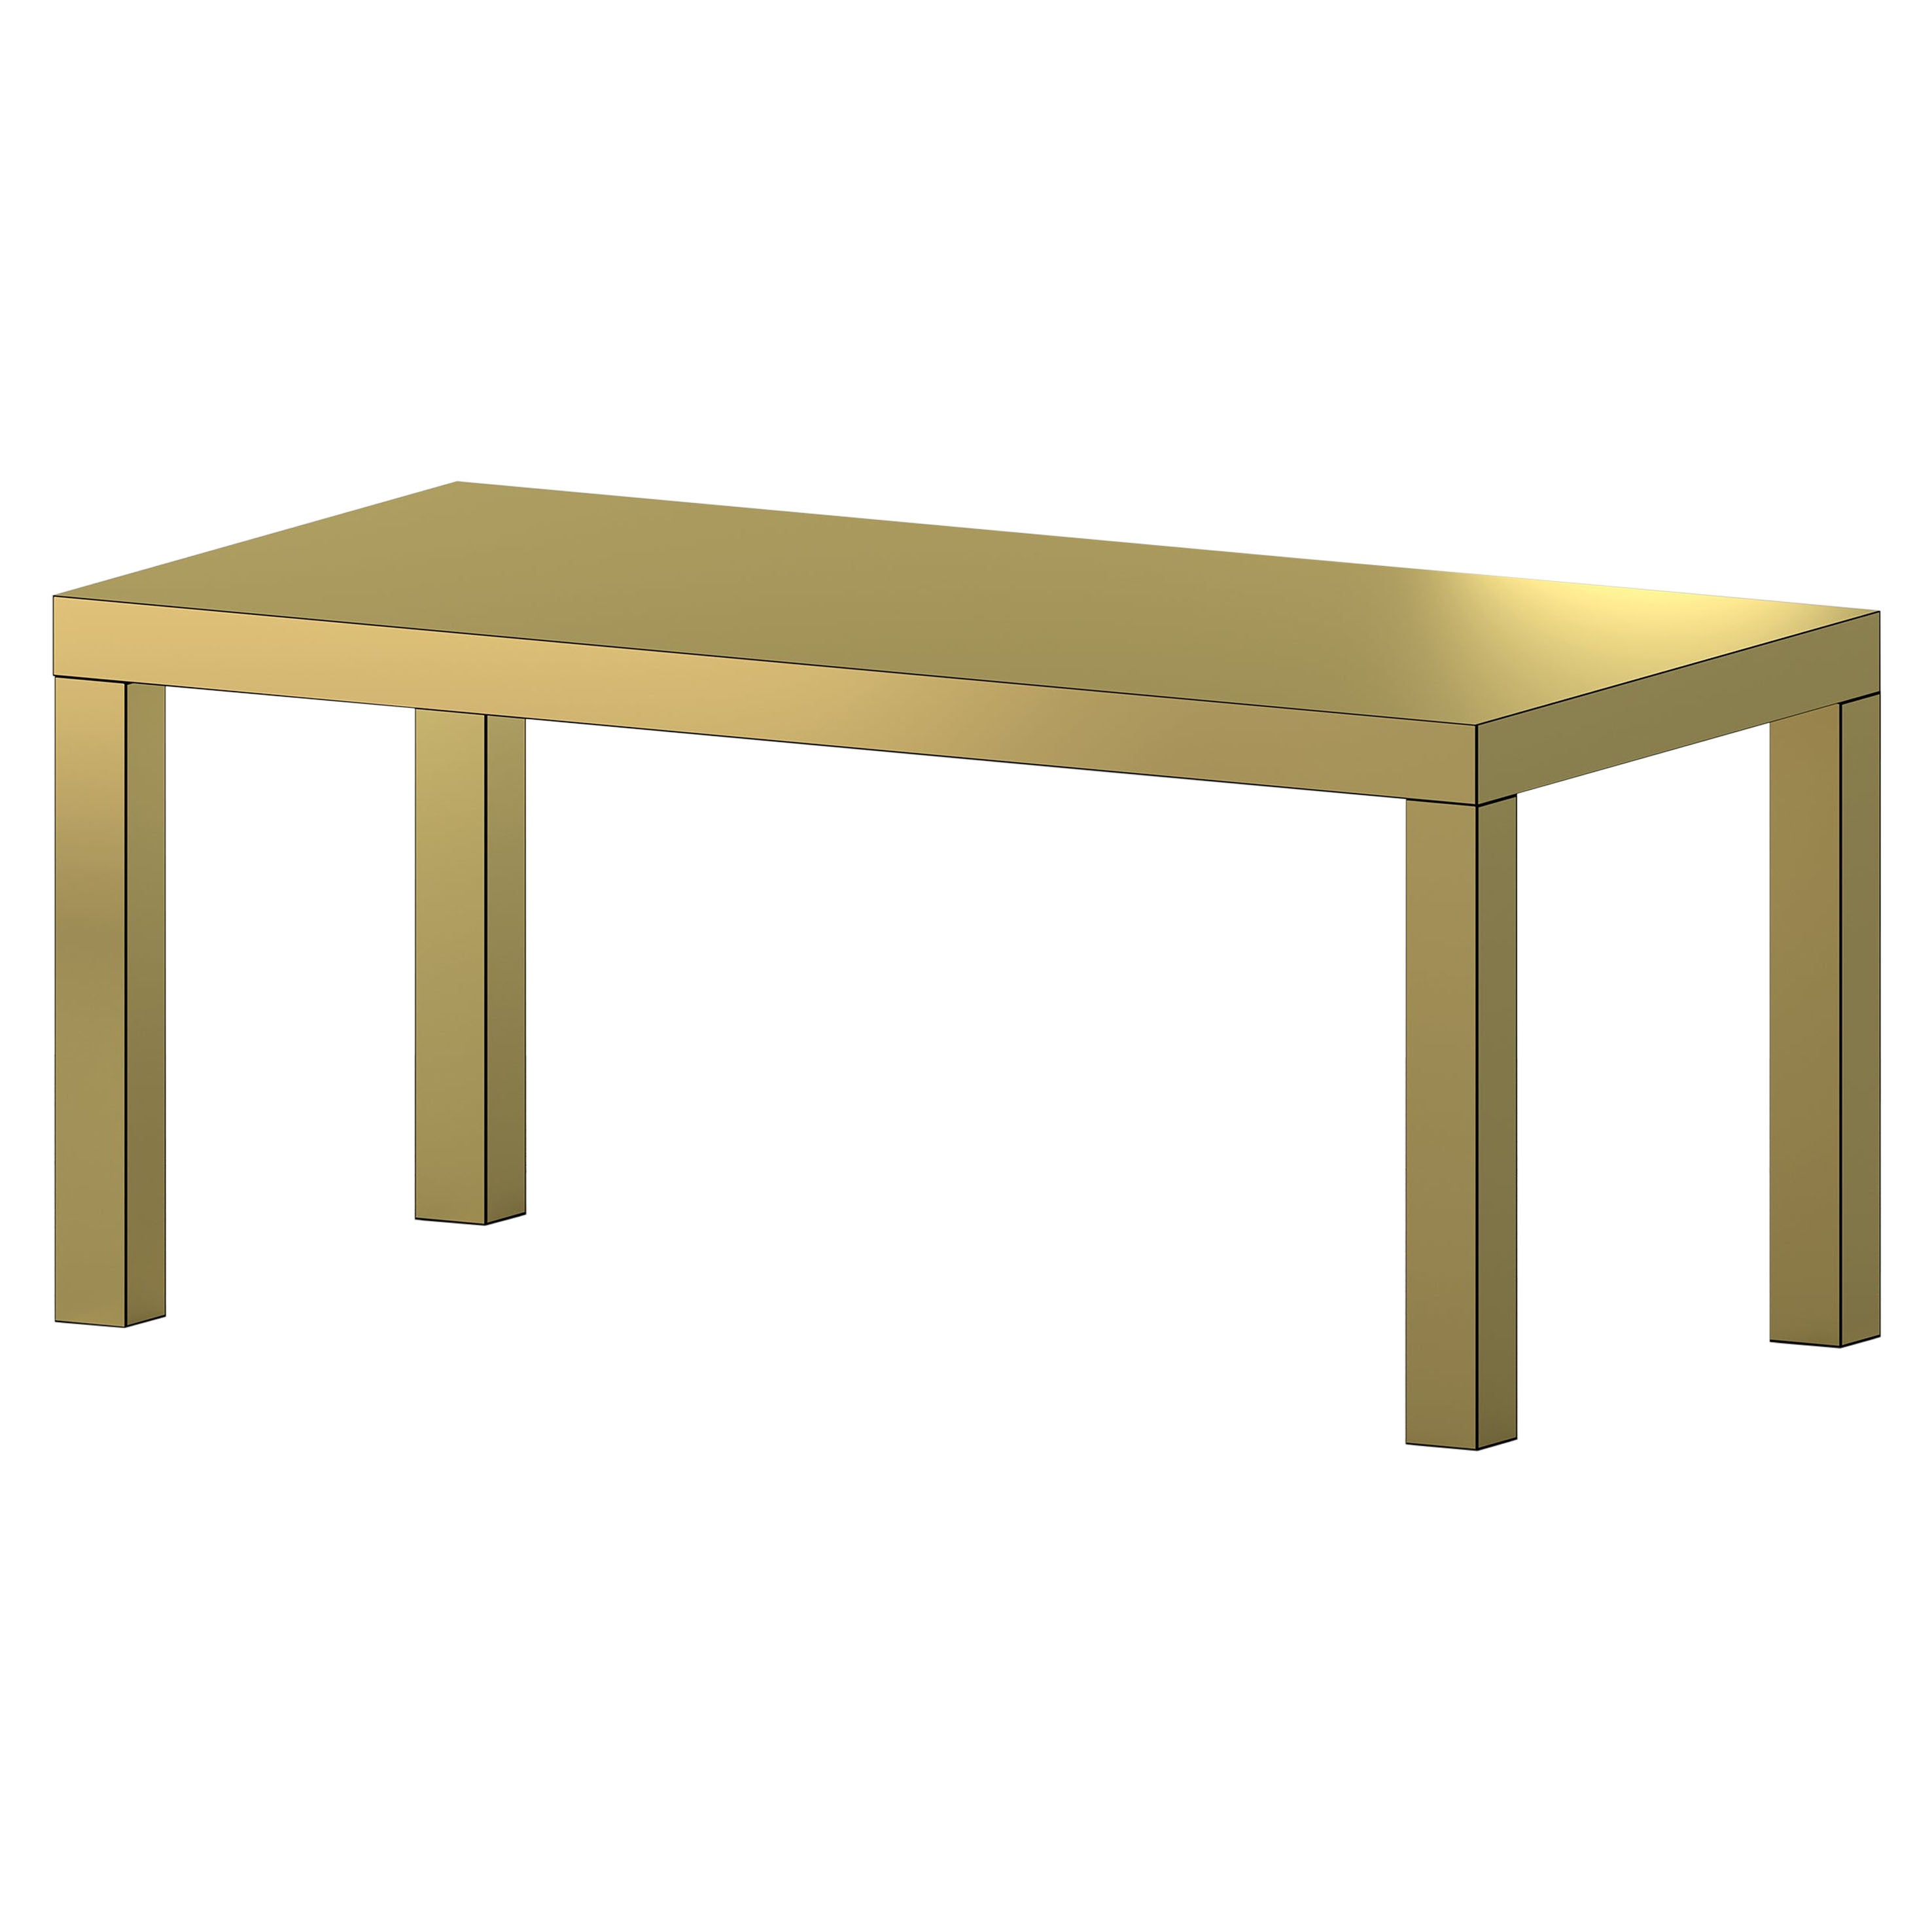 Contemporary Table/Desk Brushed Gold Hitan Aluminium by Chapel Petrassi